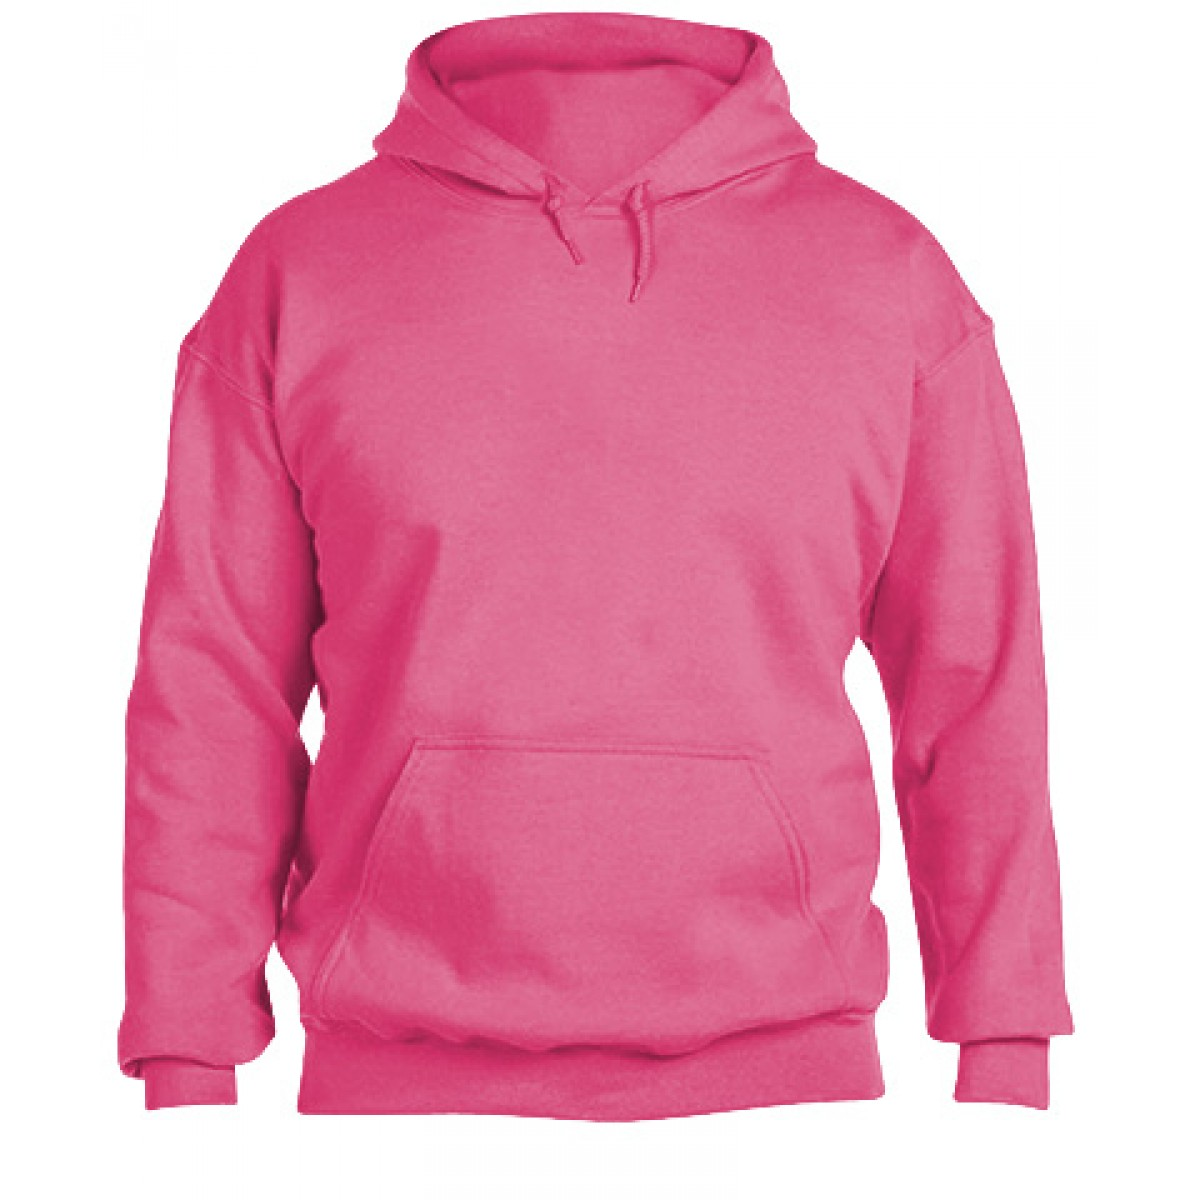 Hooded Sweatshirt 50/50 Heavy Blend -Safety Pink-M